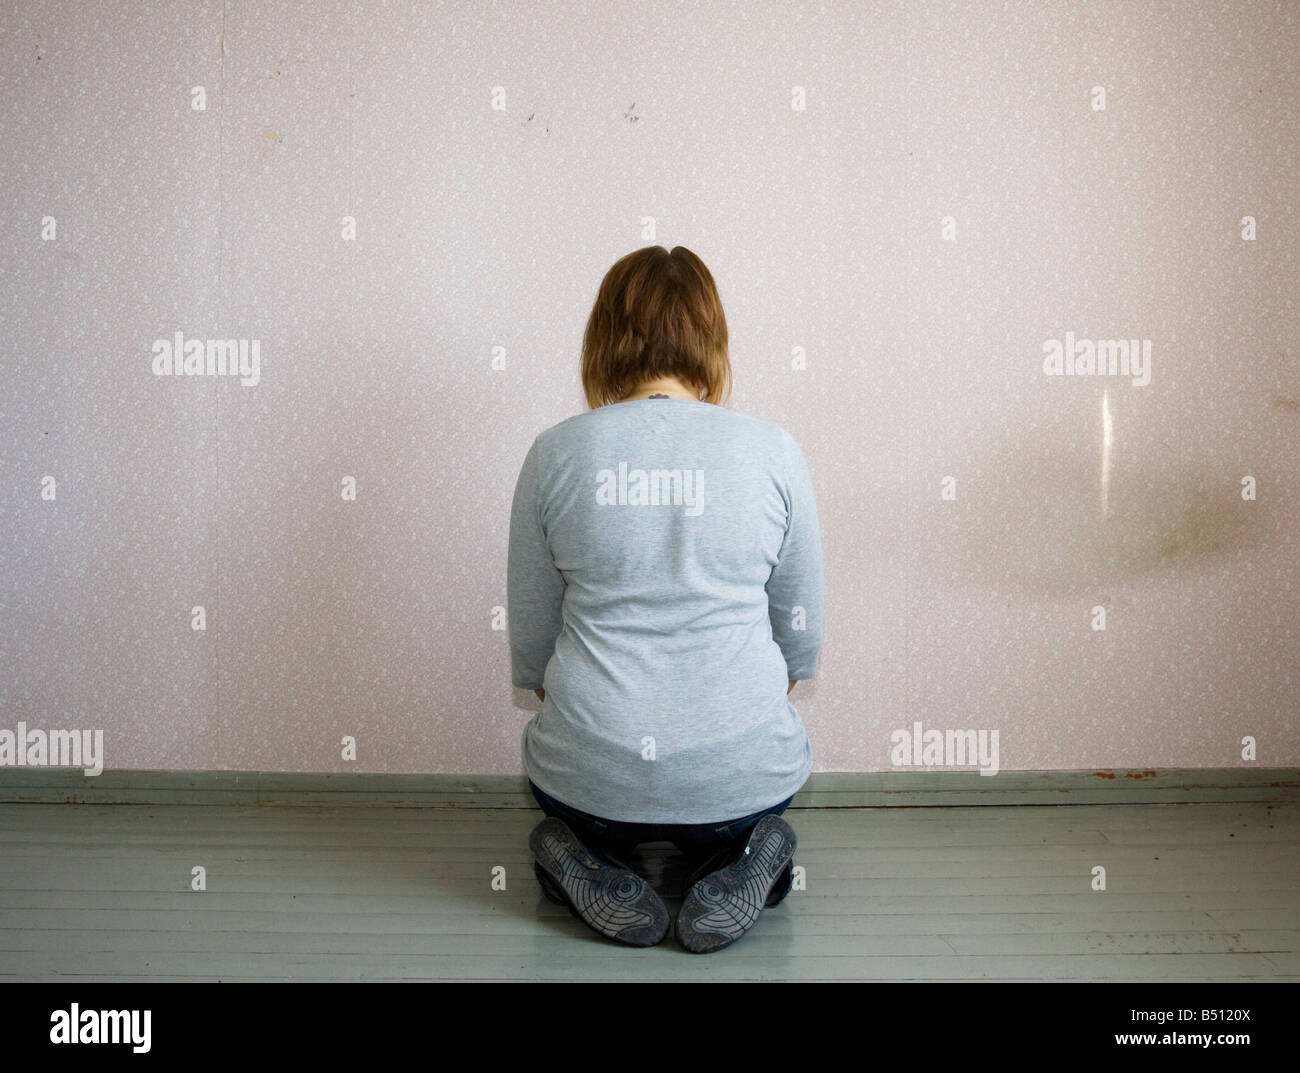 Rear view of a mid adult woman meditating - Stock Image